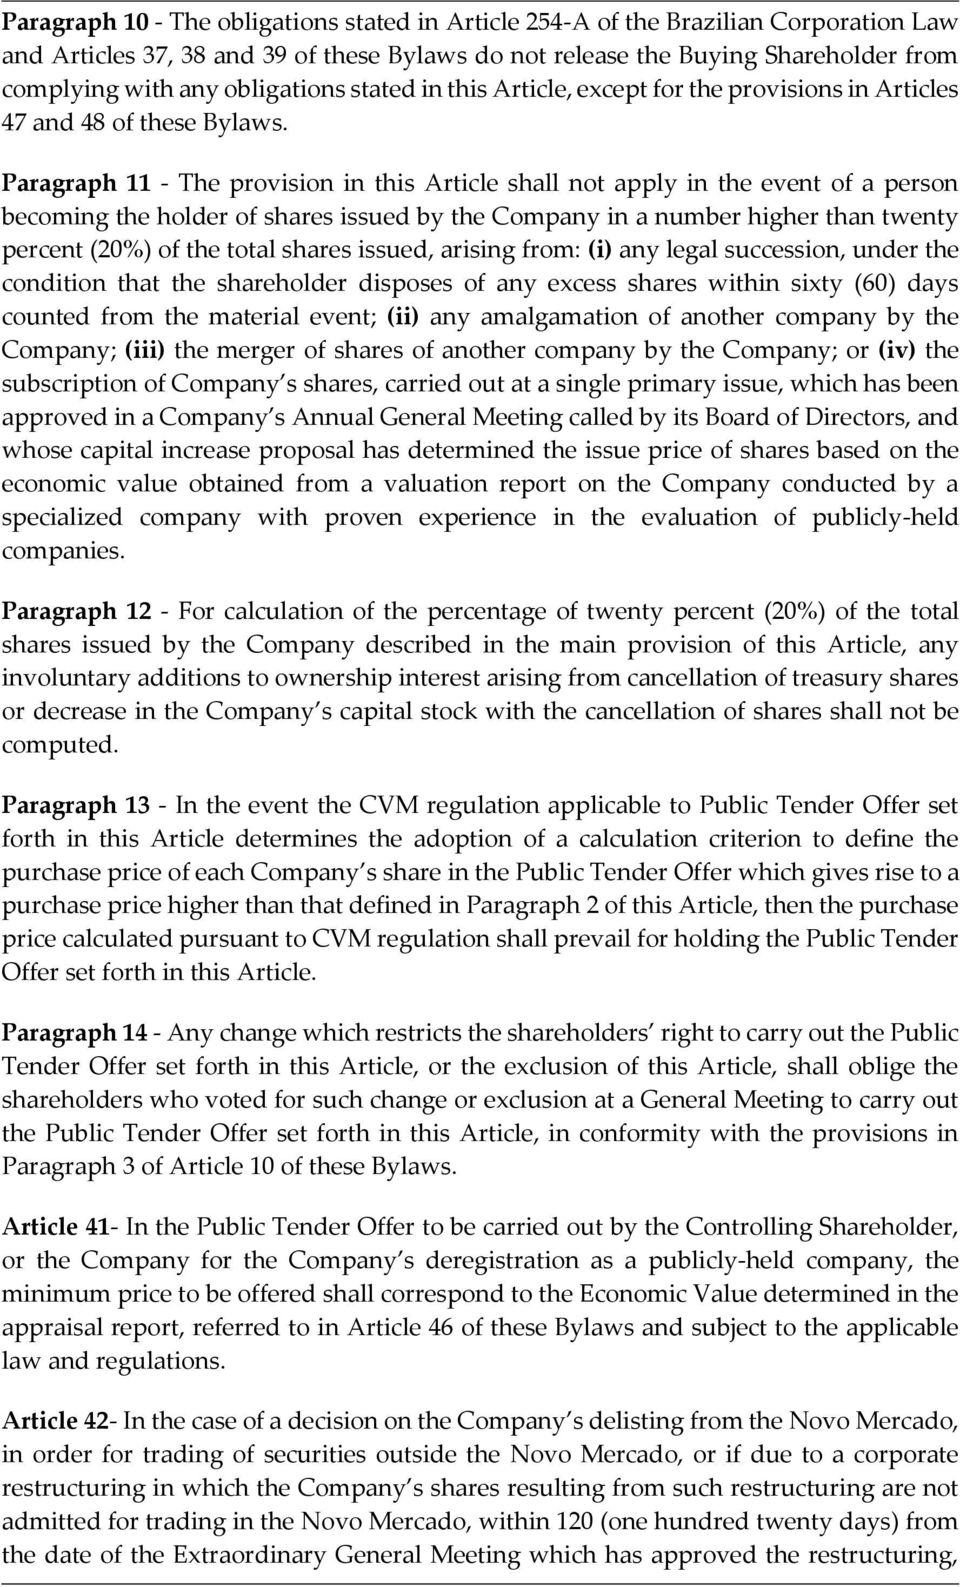 Paragraph 11 - The provision in this Article shall not apply in the event of a person becoming the holder of shares issued by the Company in a number higher than twenty percent (20%) of the total